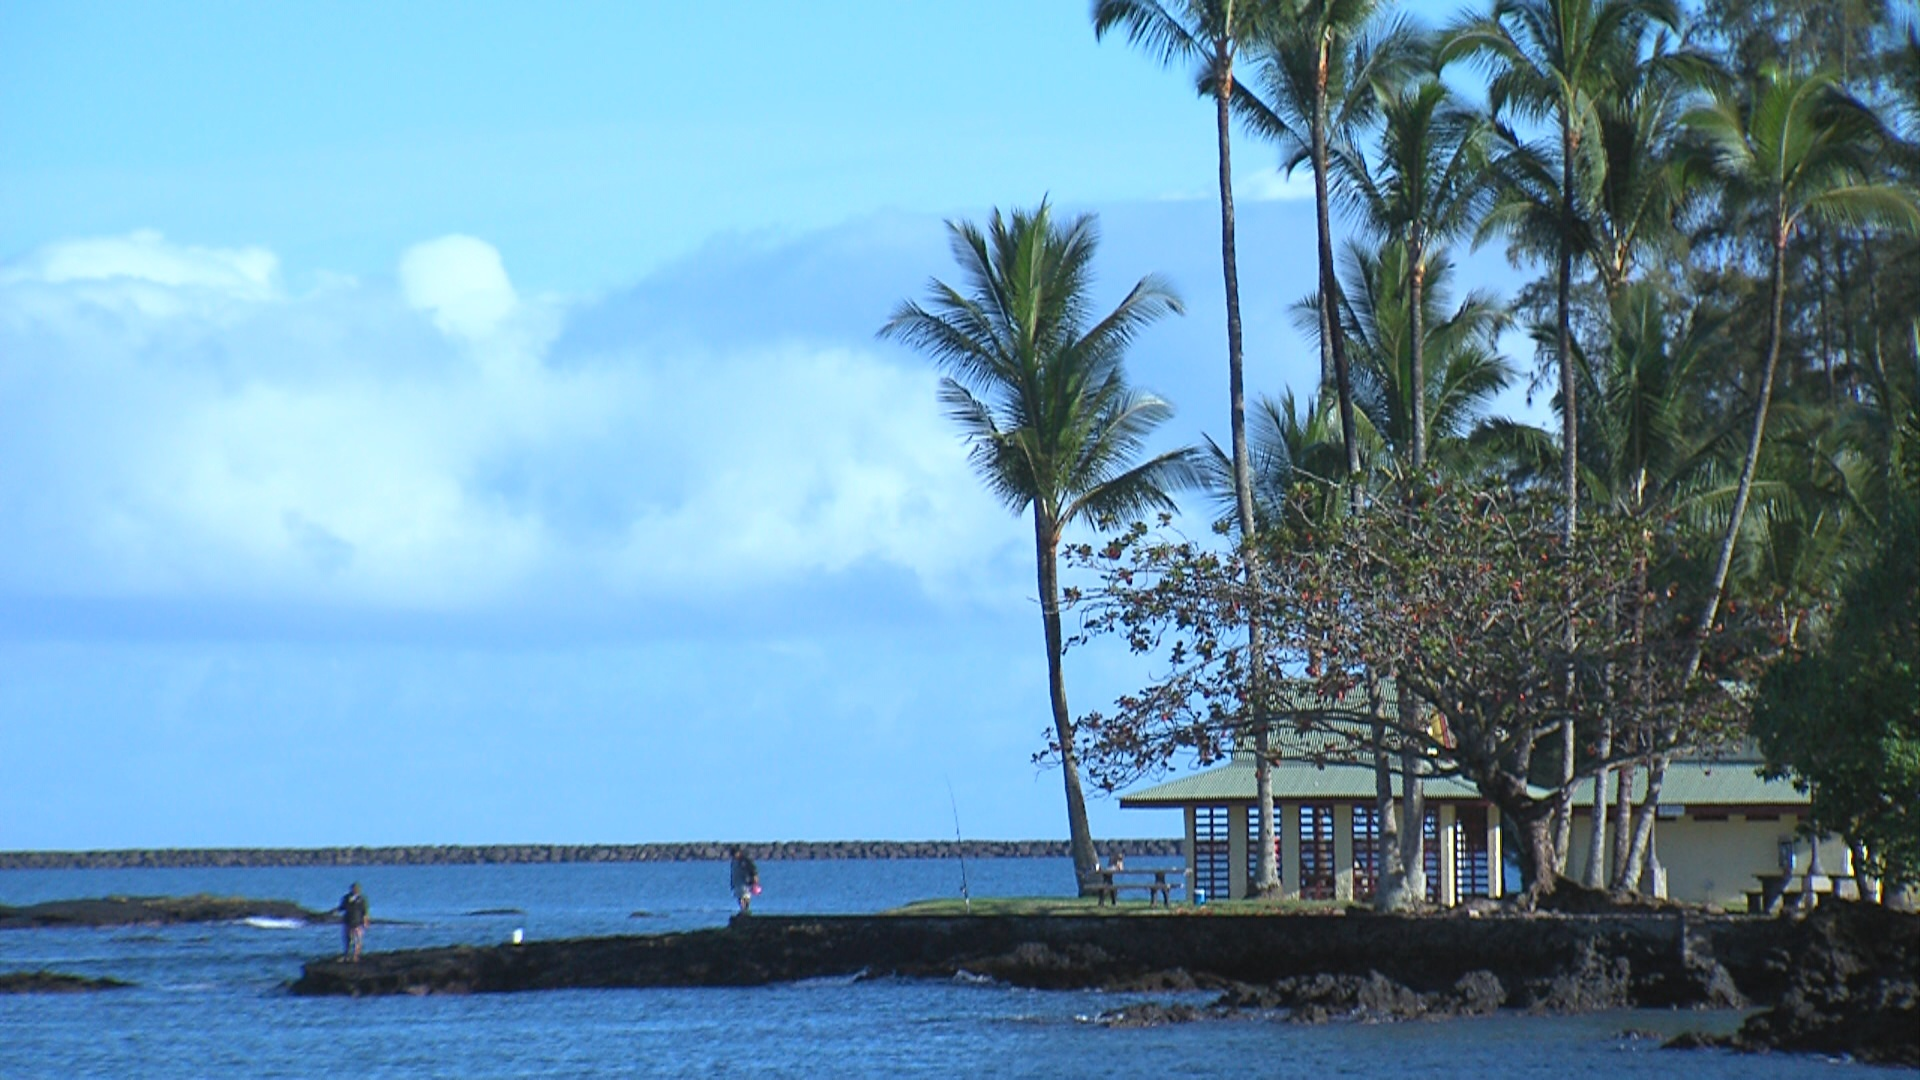 VIDEO: Waiakea Peninsula Redevelopment District Bill Advances